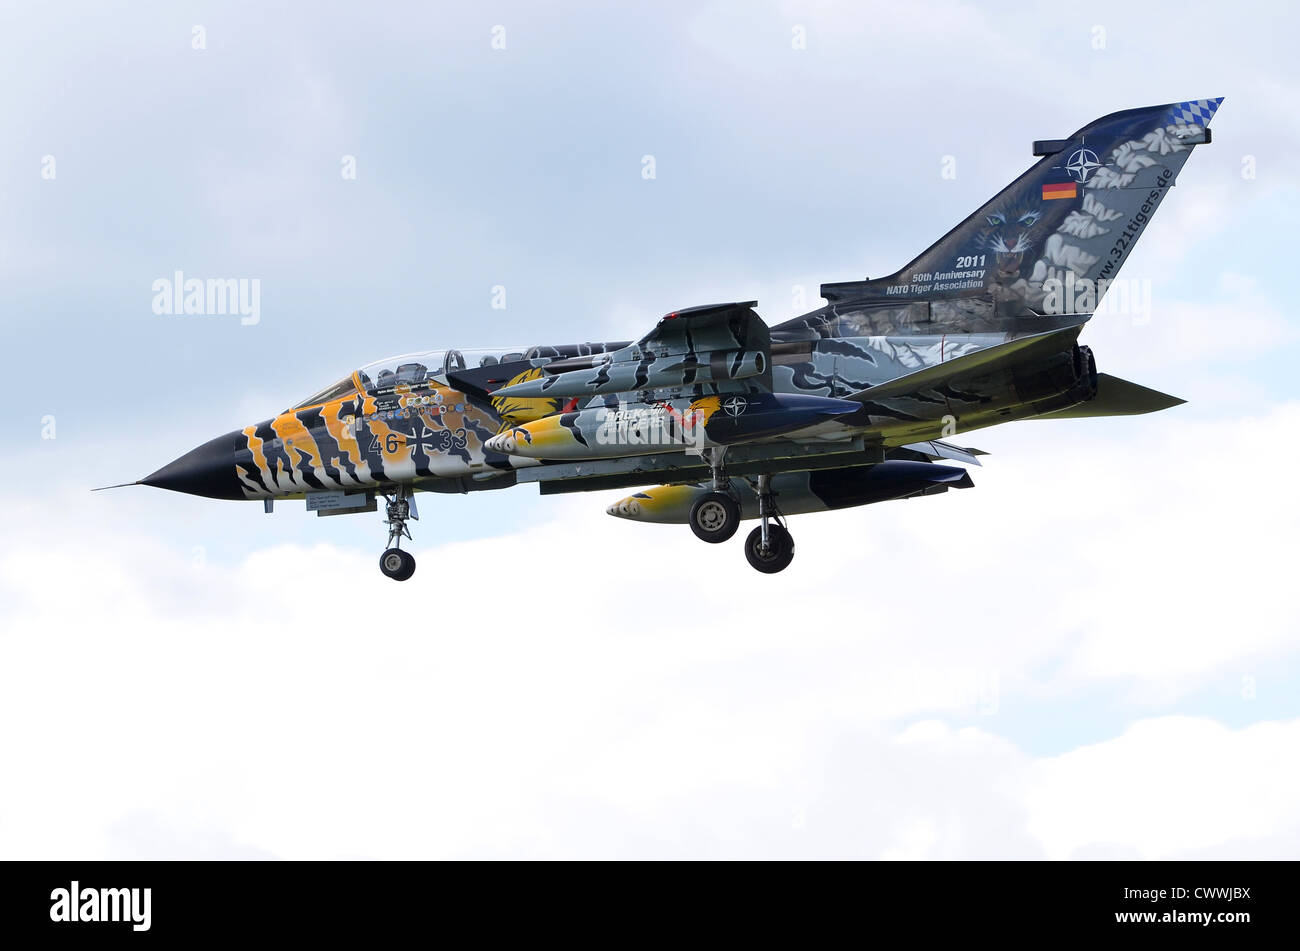 Tornado ECR in Tiger Meet markings operated by the German Air Force on approach for landing at RAF Fairford - Stock Image